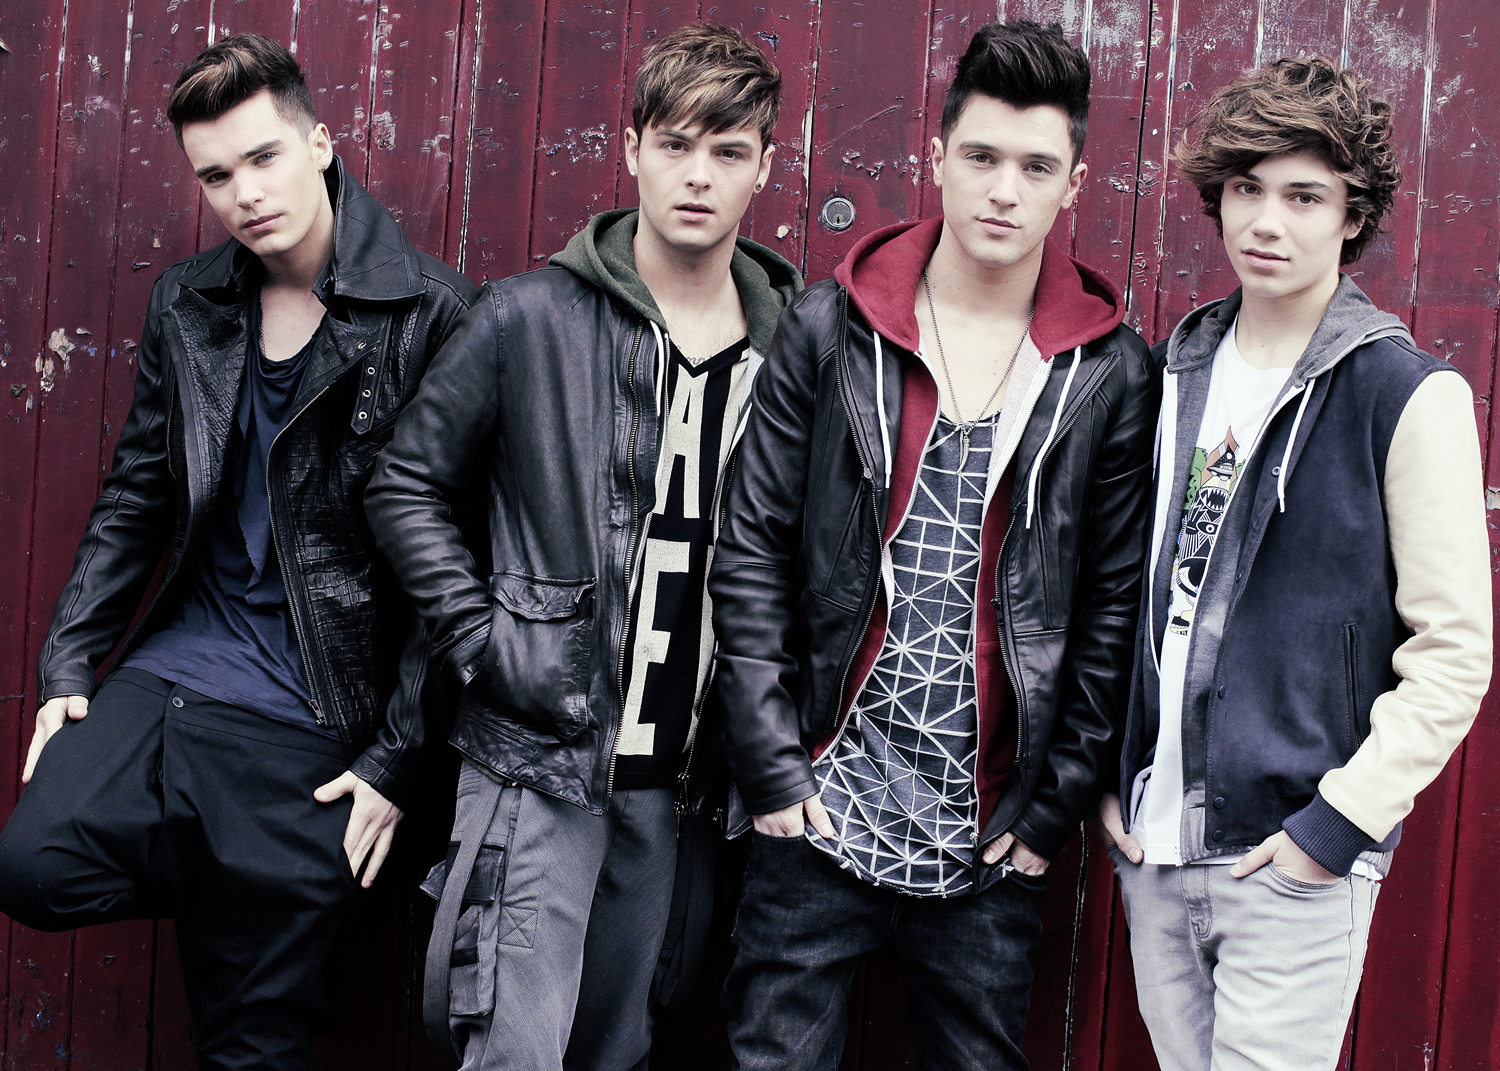 Boy band Union J in city date